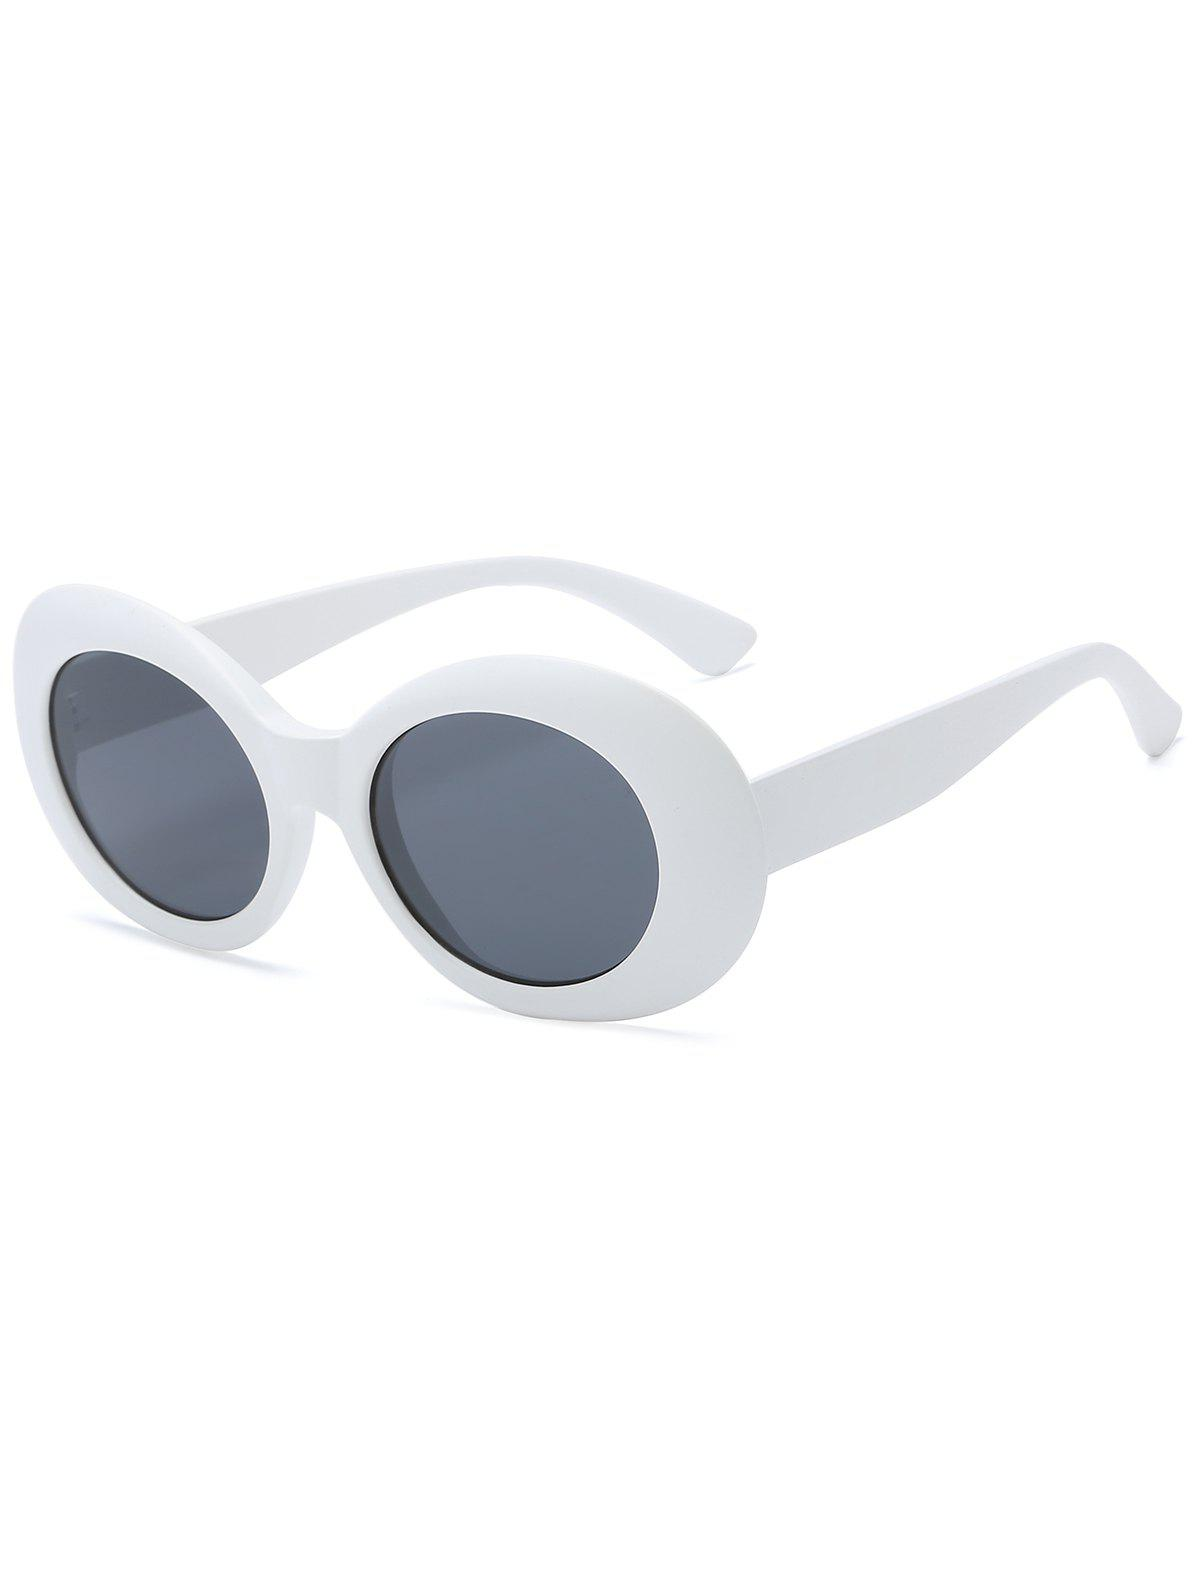 Anti Fatigue Plastic Frame Oval Sunglasses - WHITE